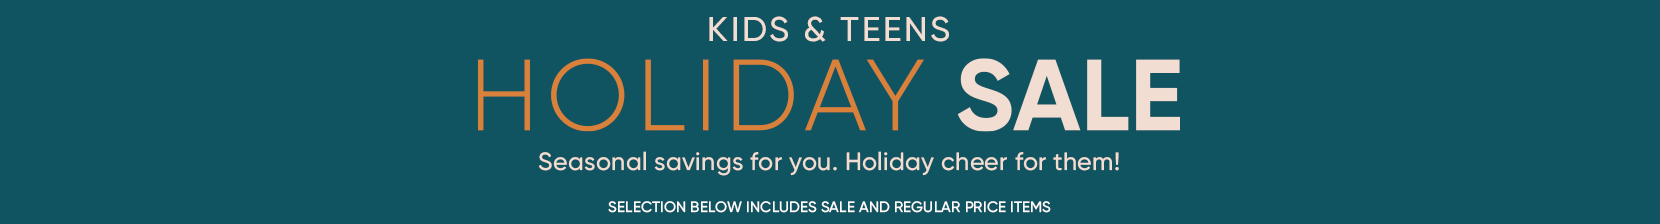 kids and teens holiday sale. seasonal savings for you. holiday cheer for them. selection below includes sale and regular price items